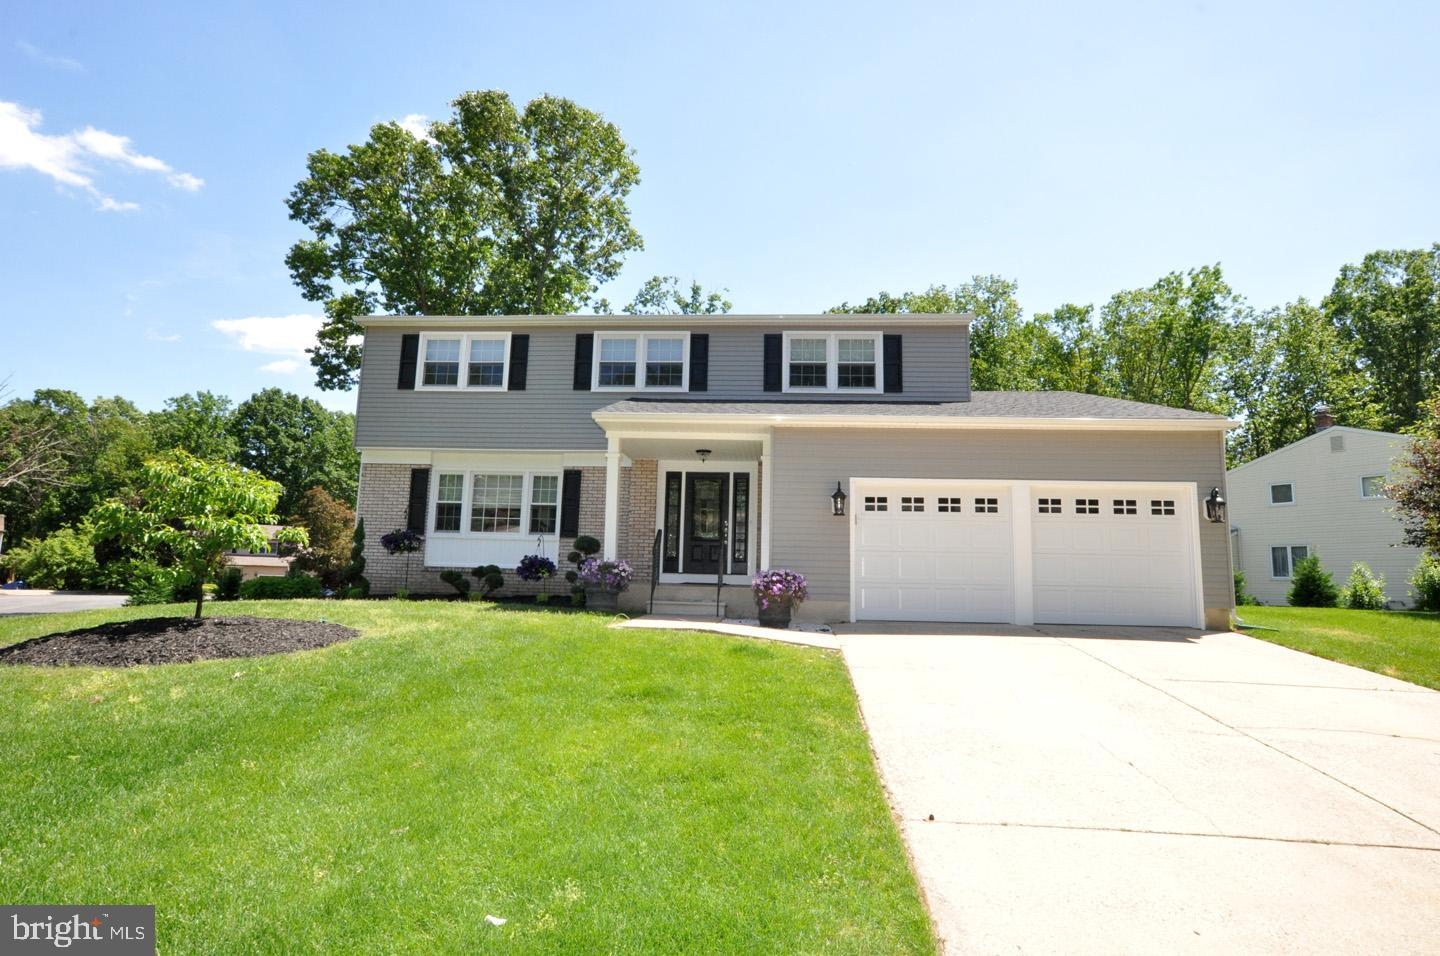 572 CAMBRIDGE ROAD, TURNERSVILLE, NJ 08012